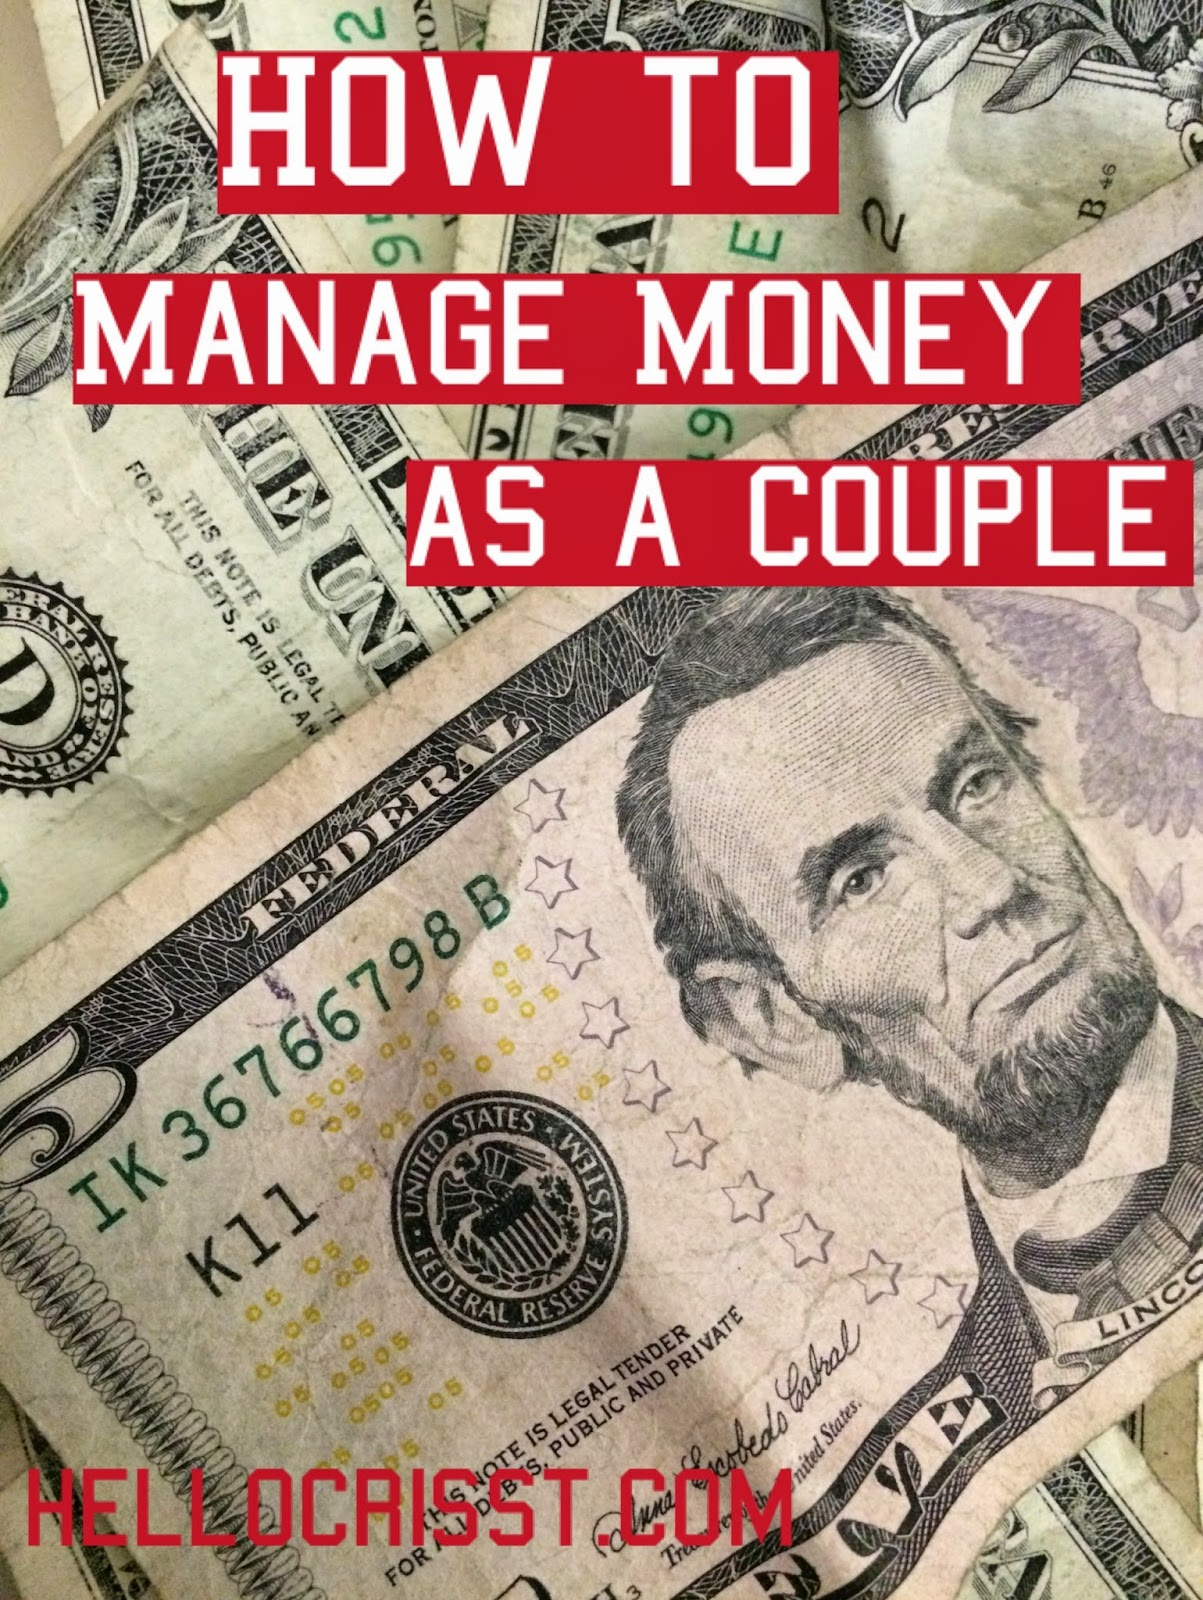 how to manage money as a newlyweds, how to manage money as a married couple, how to manage money as a college student